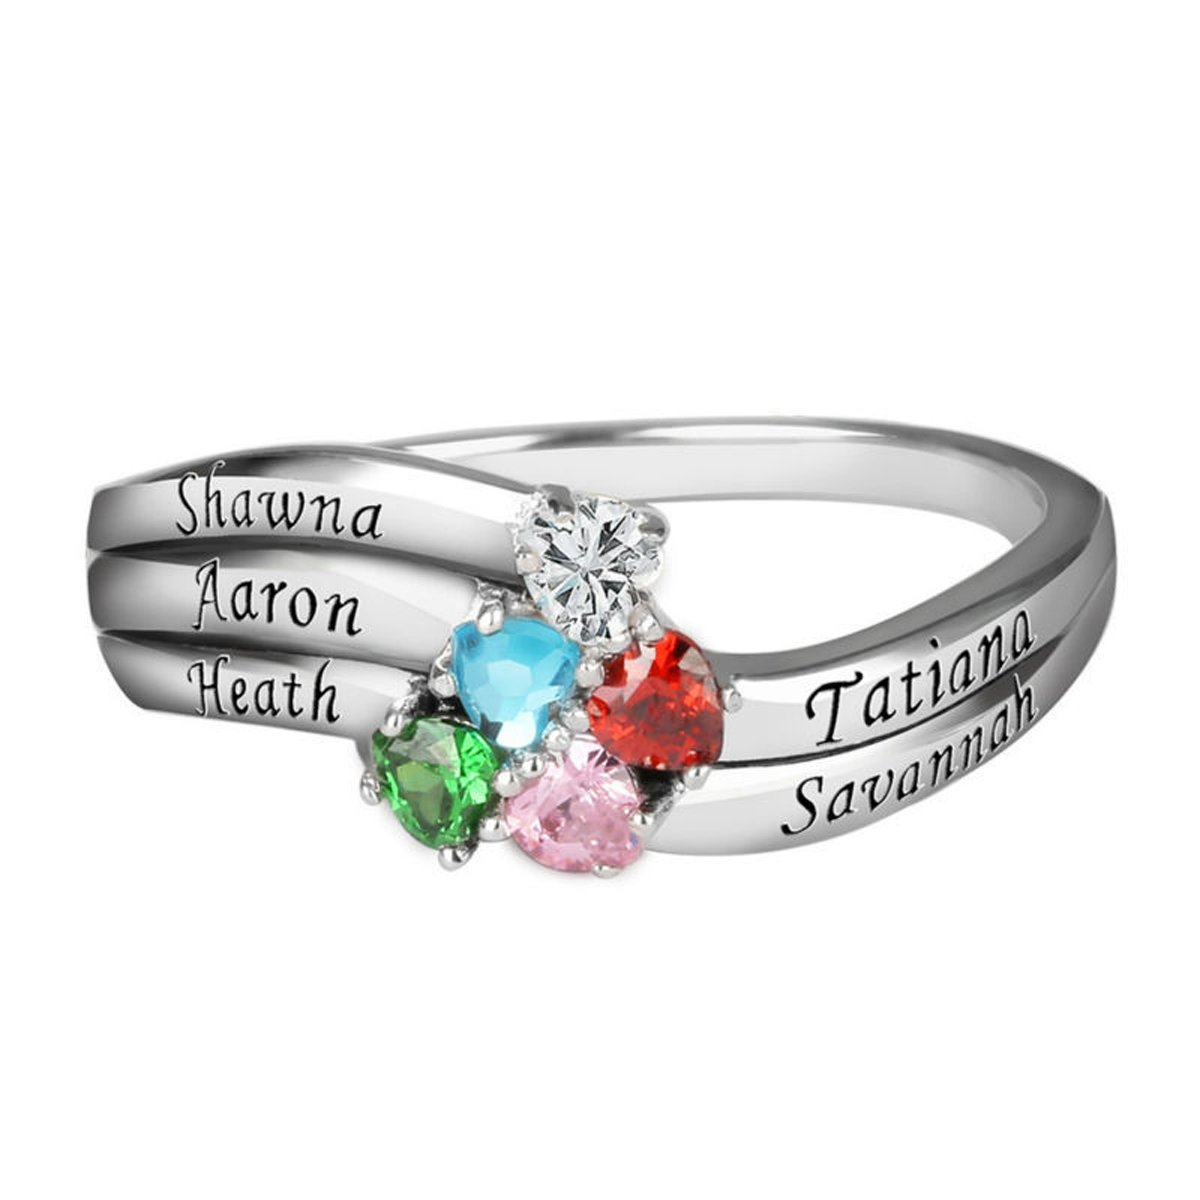 Quiges Silver Mother CZ Birthstone Personalized Engraved 5 Name Love Heart Band Custom Ring 8